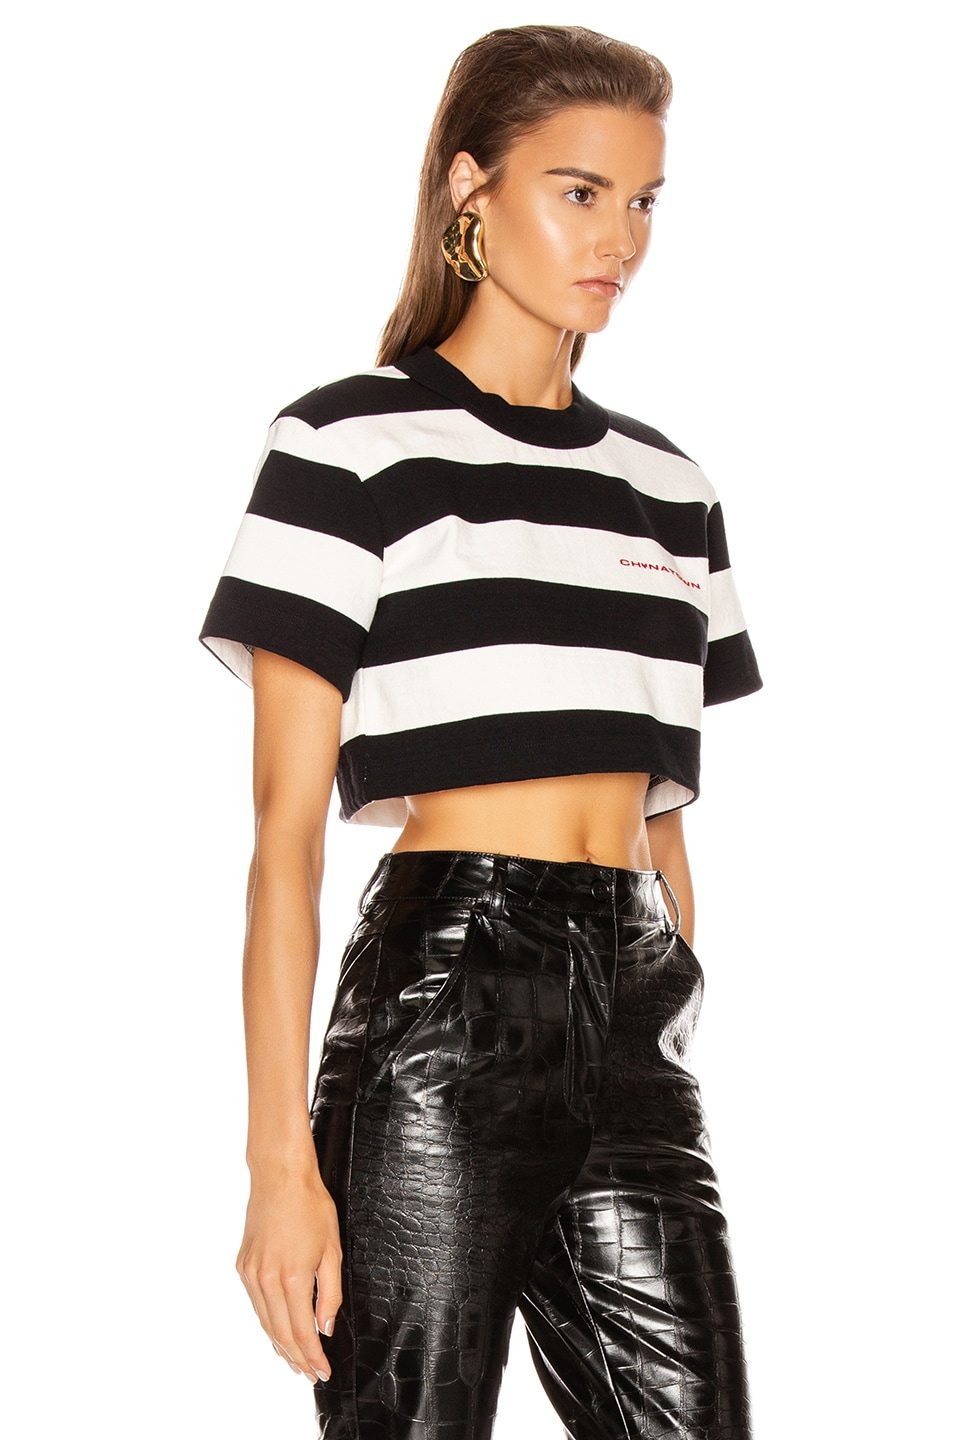 Image 2 of Alexander Wang Chynatown Stripped Cropped Tee in Black & White